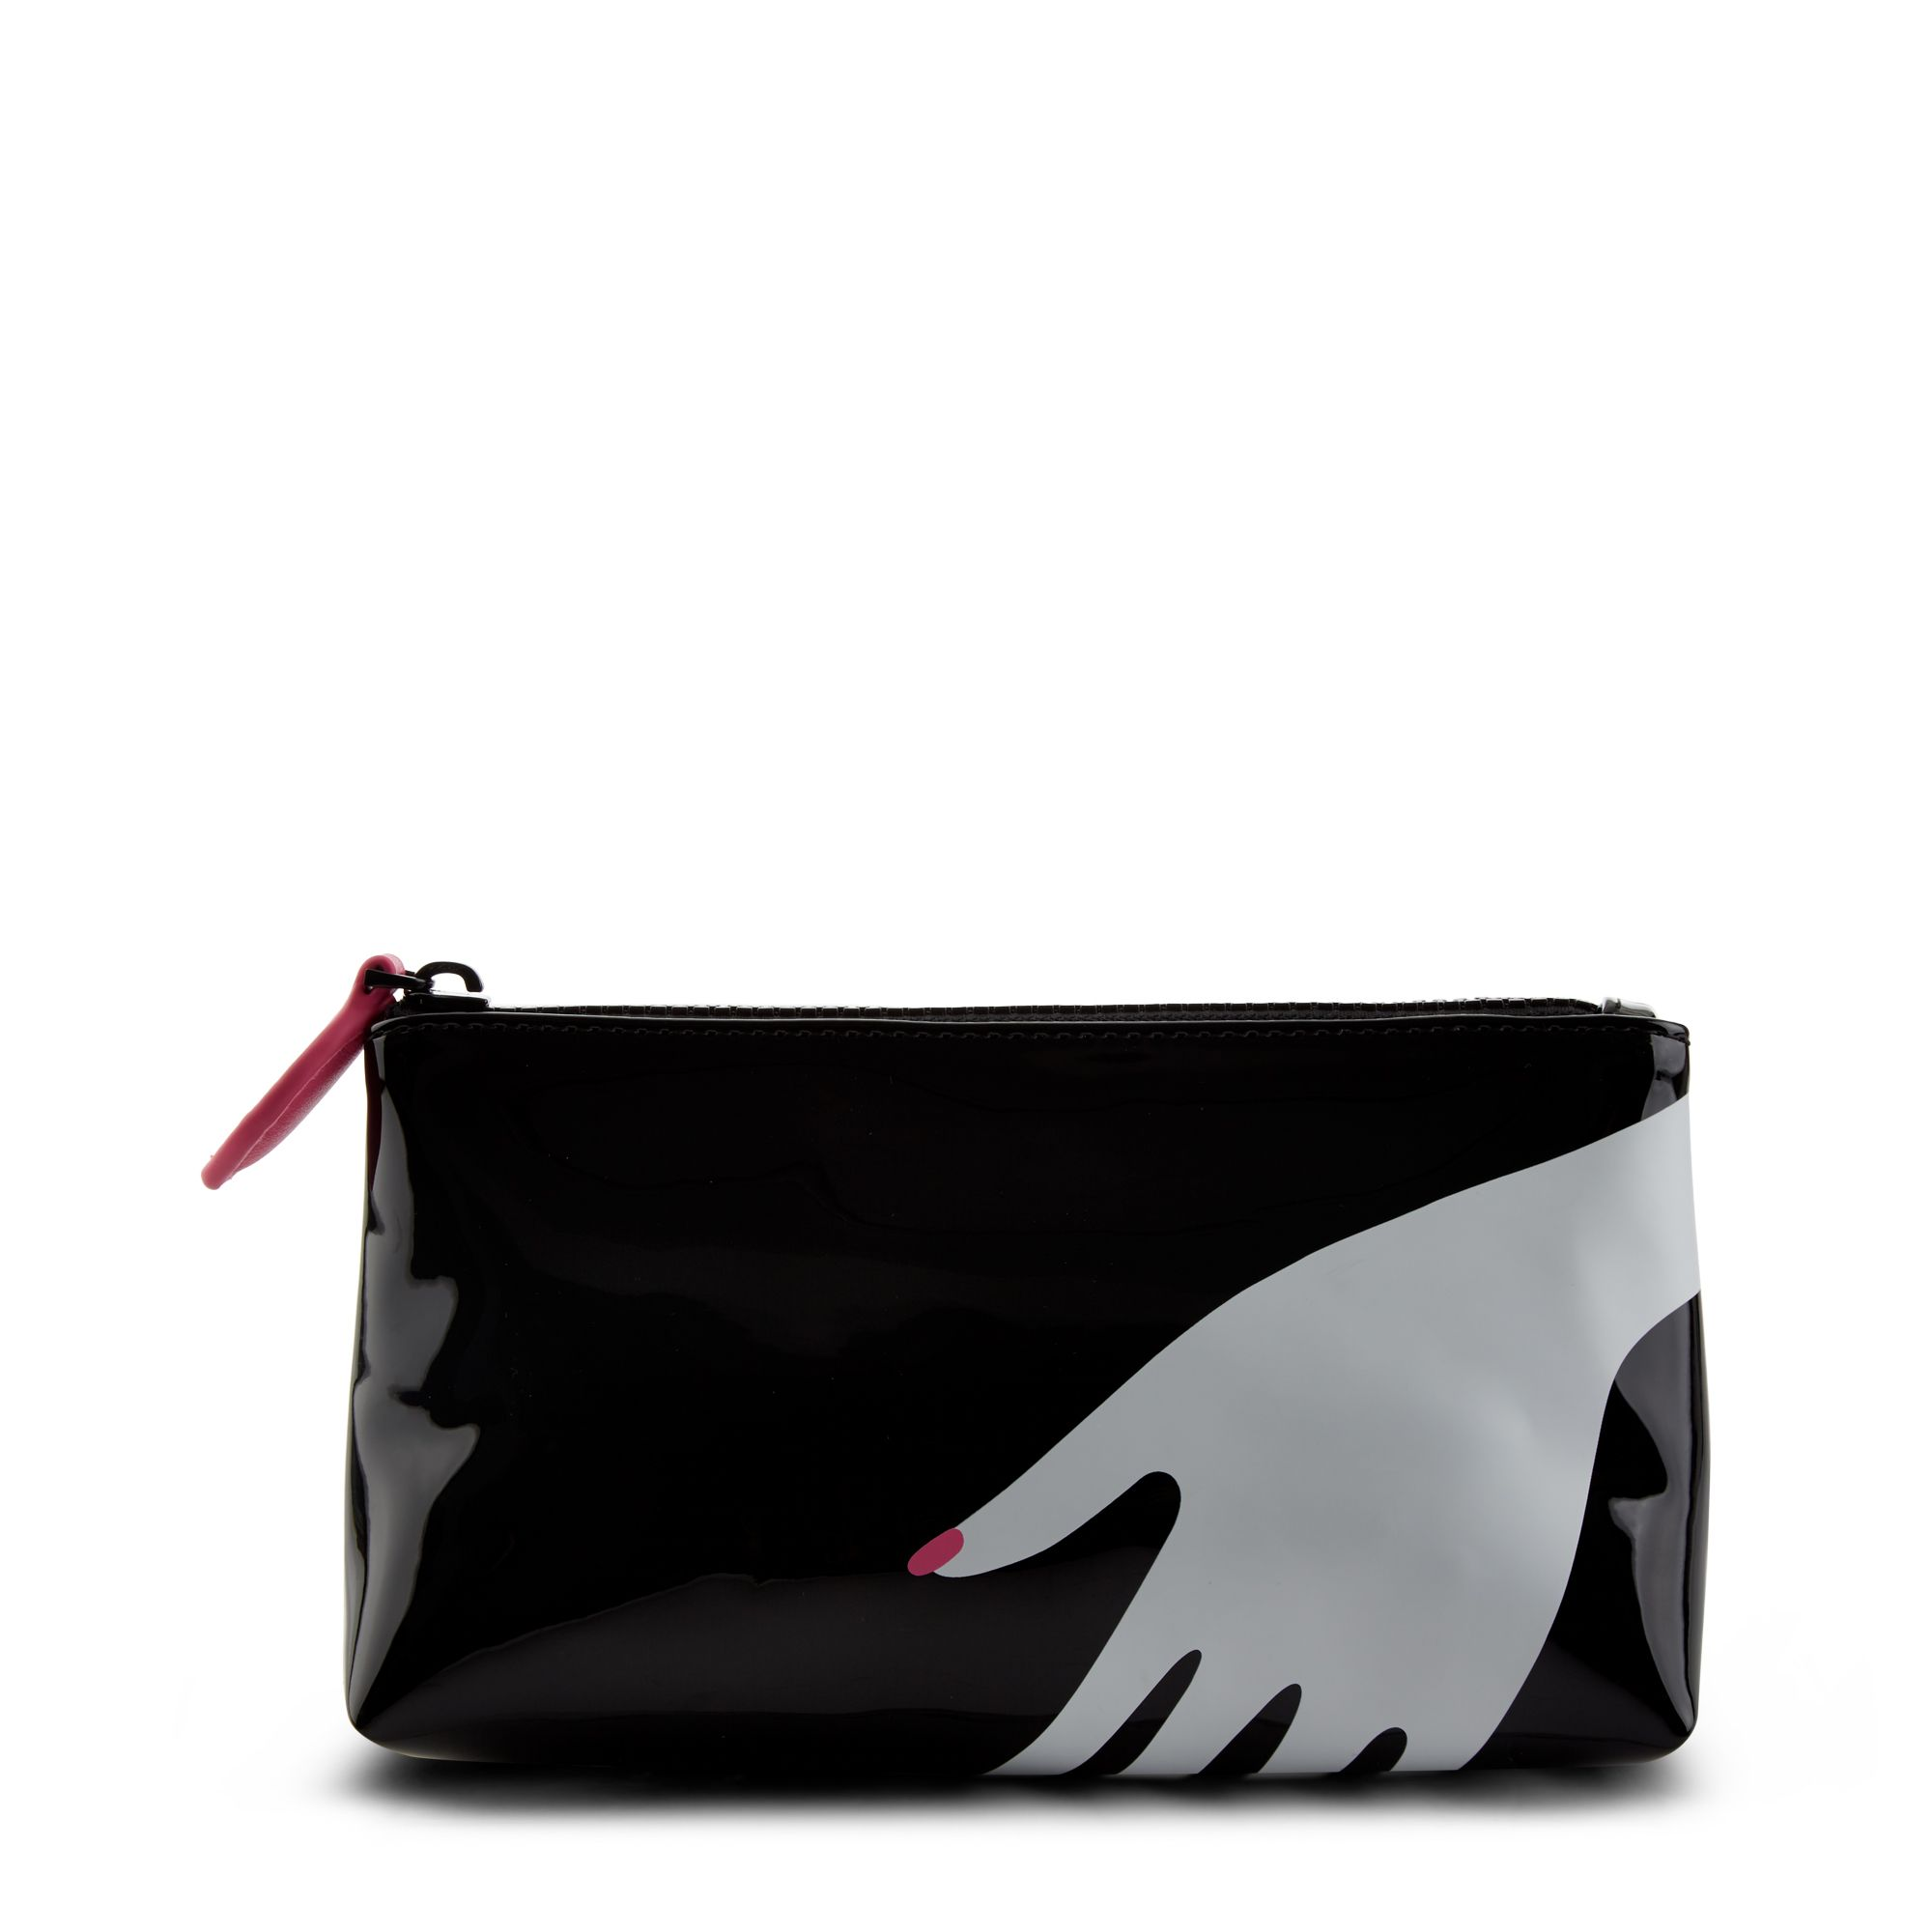 Lulu Guinness Hug print large makeup bag, Black